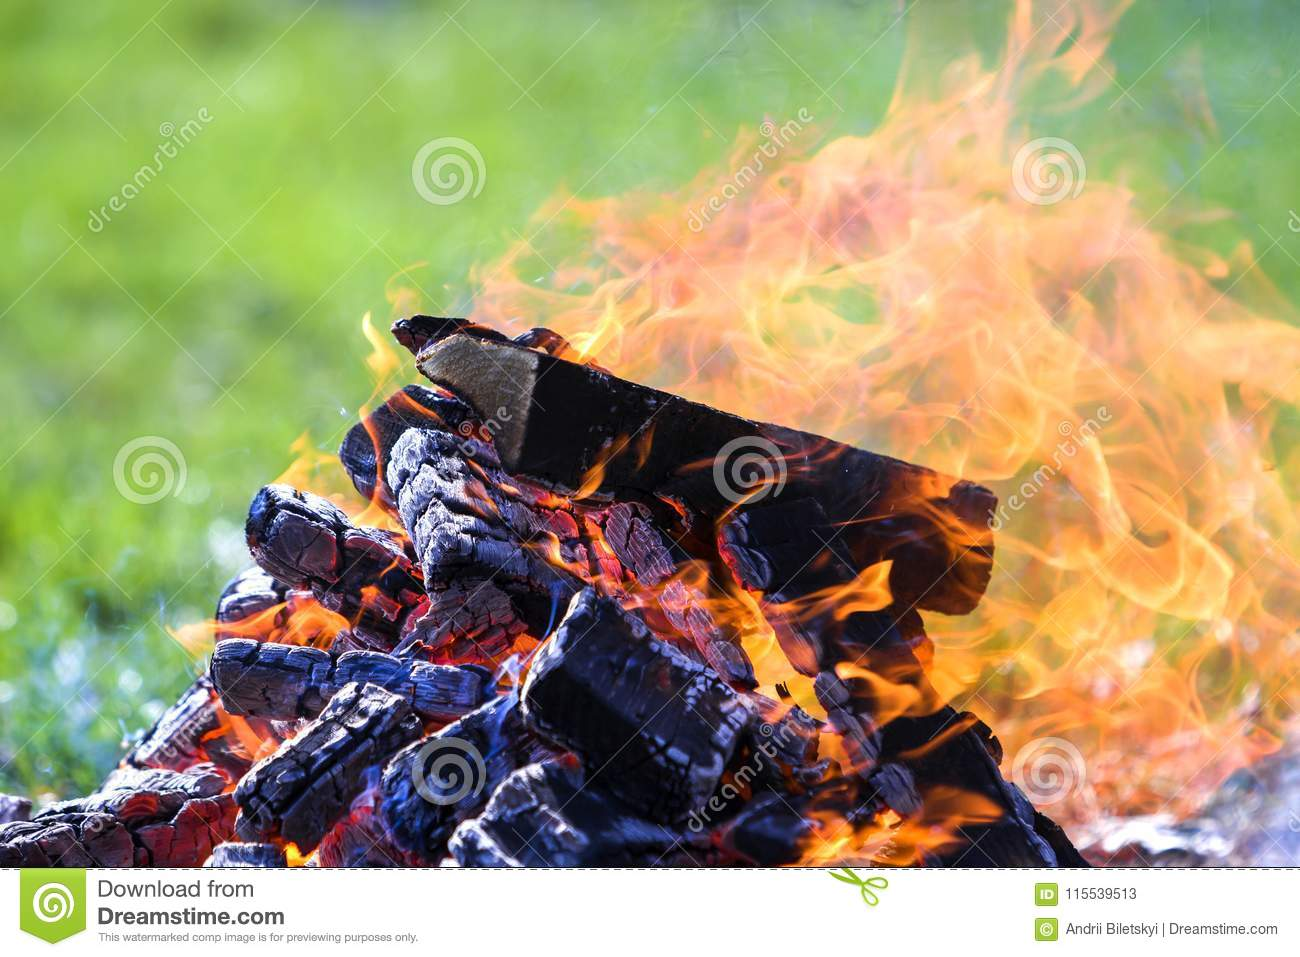 Glowing bonfire on nature. Burning wooden planks outside on summer day. Bright orange flames, light smoke and dark ashes on green